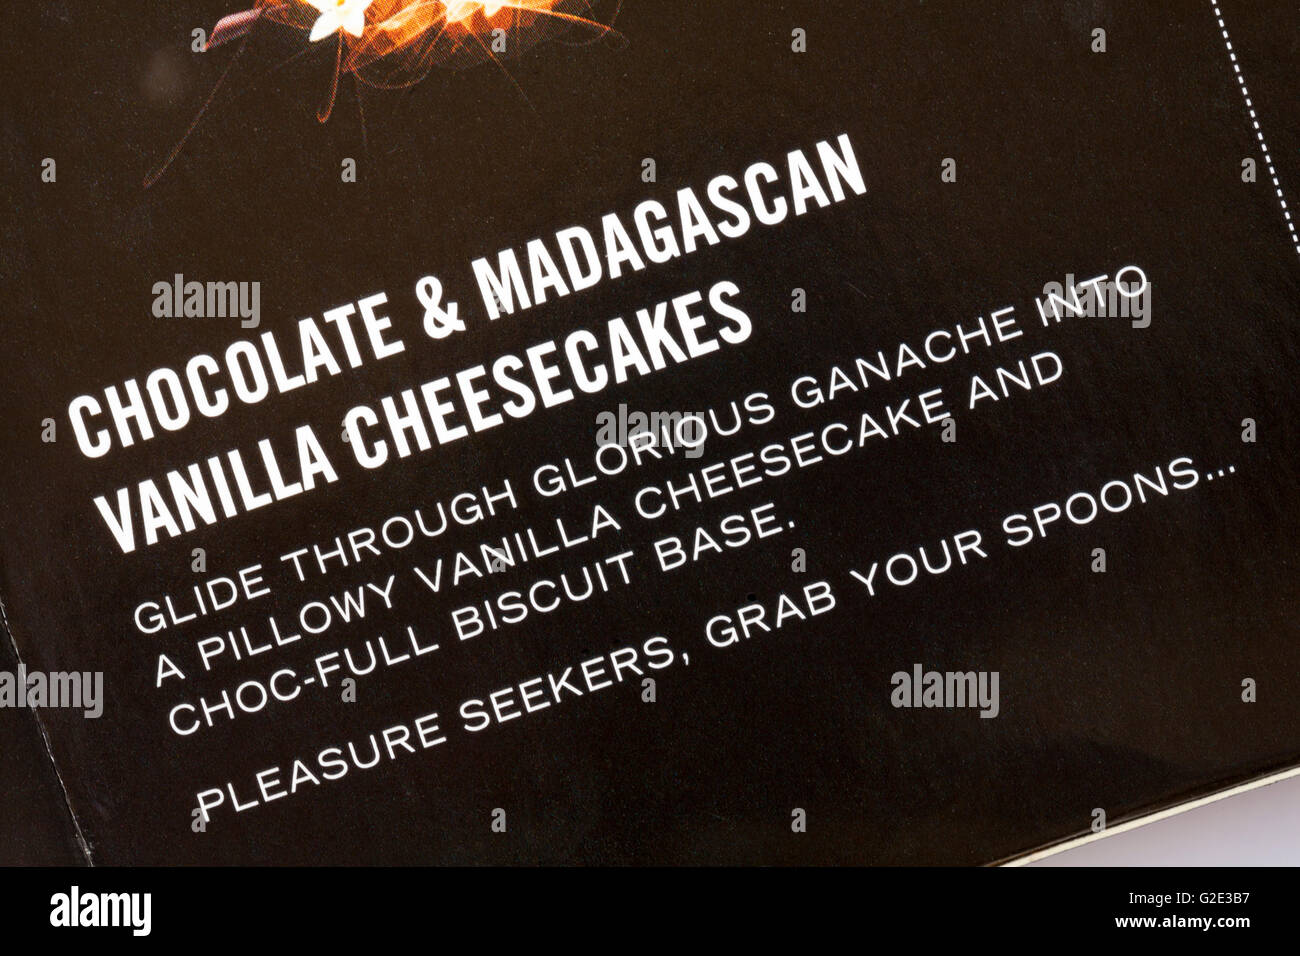 pleasure seekers grab your spoons - information on box of Gu Chocolate & Madagascan Vanilla Cheesecakes - Stock Image